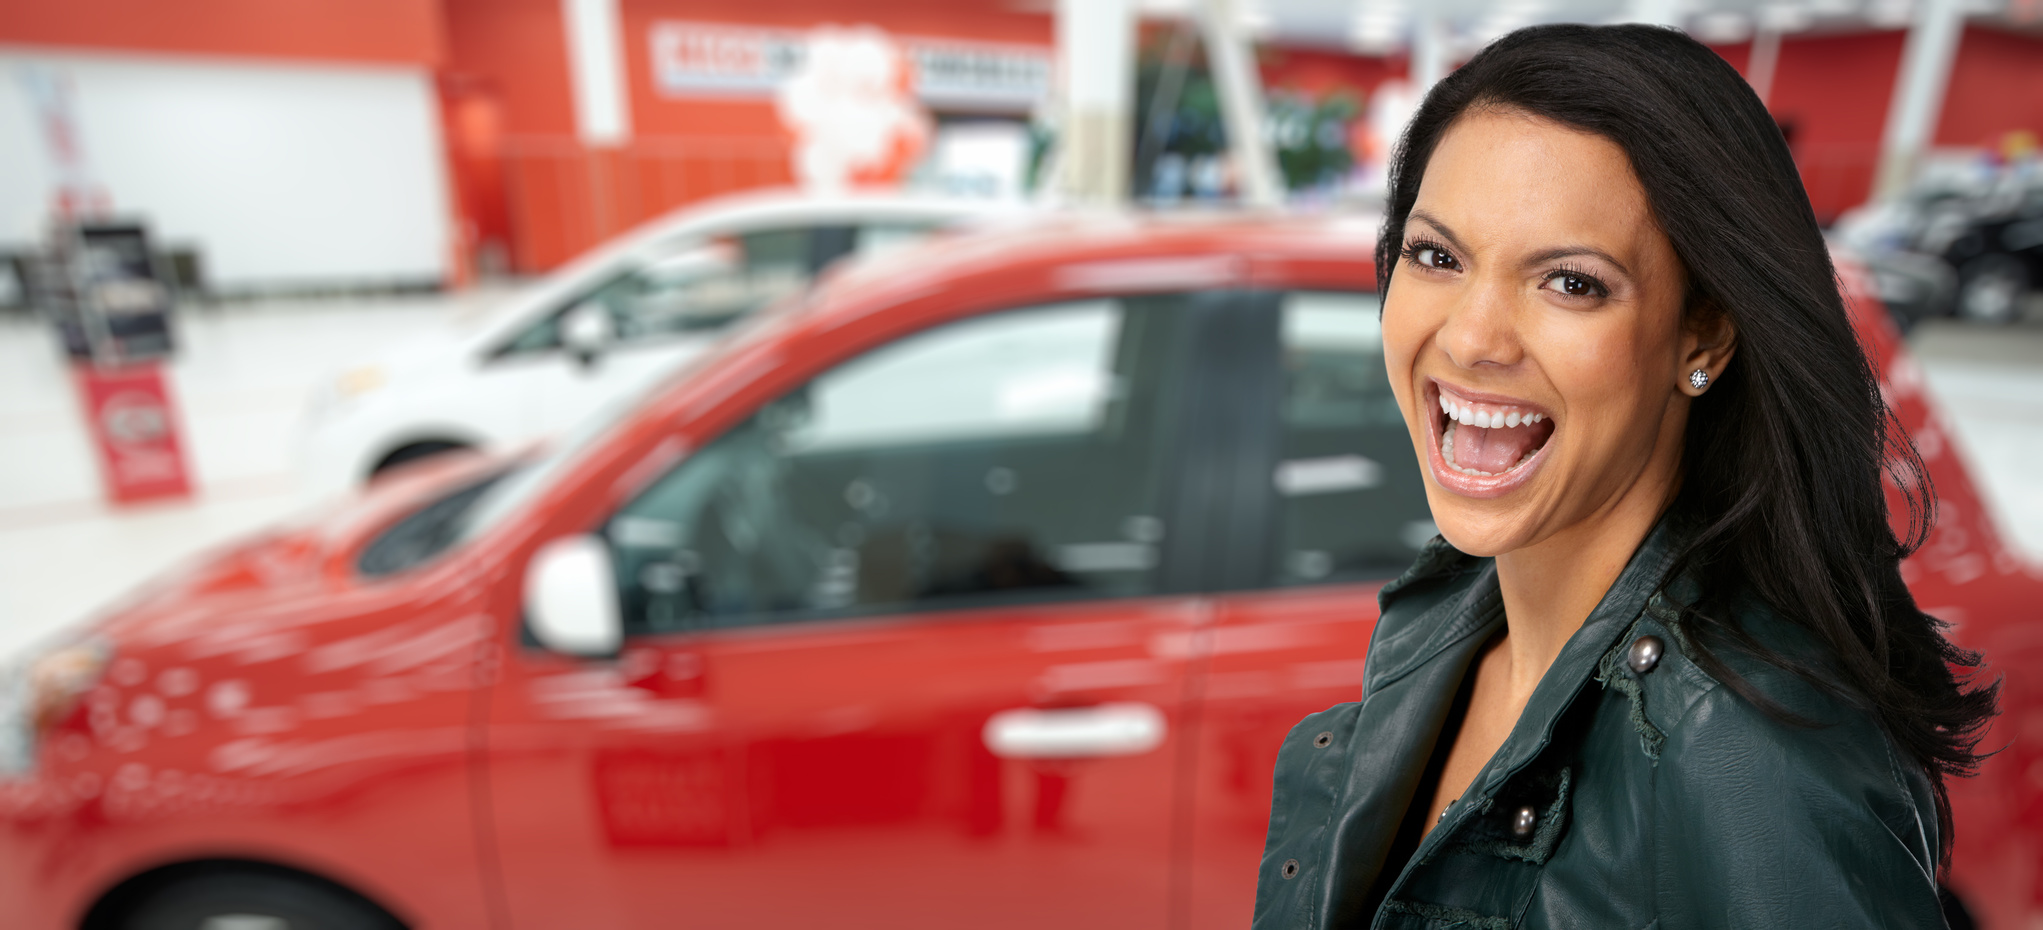 Miracle Sets The Bar High in Auto Repair Miracle Body and Paint San Antonio Texas